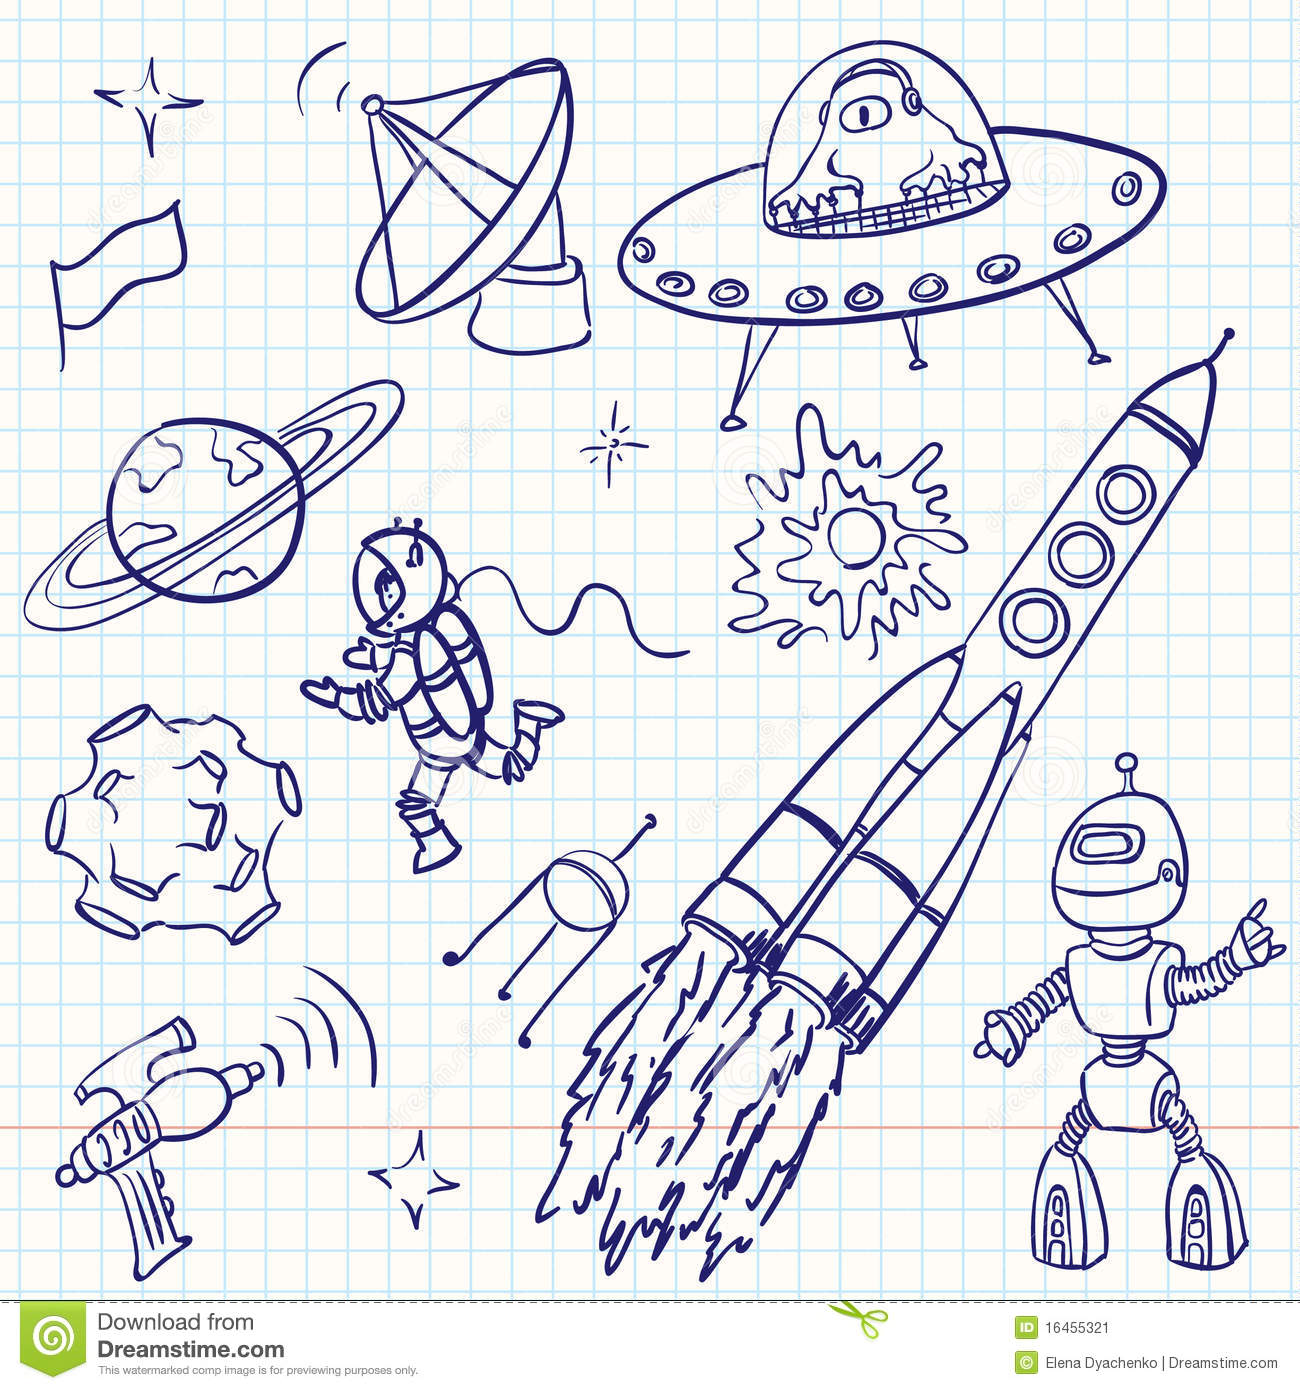 astronomy doodles - photo #16